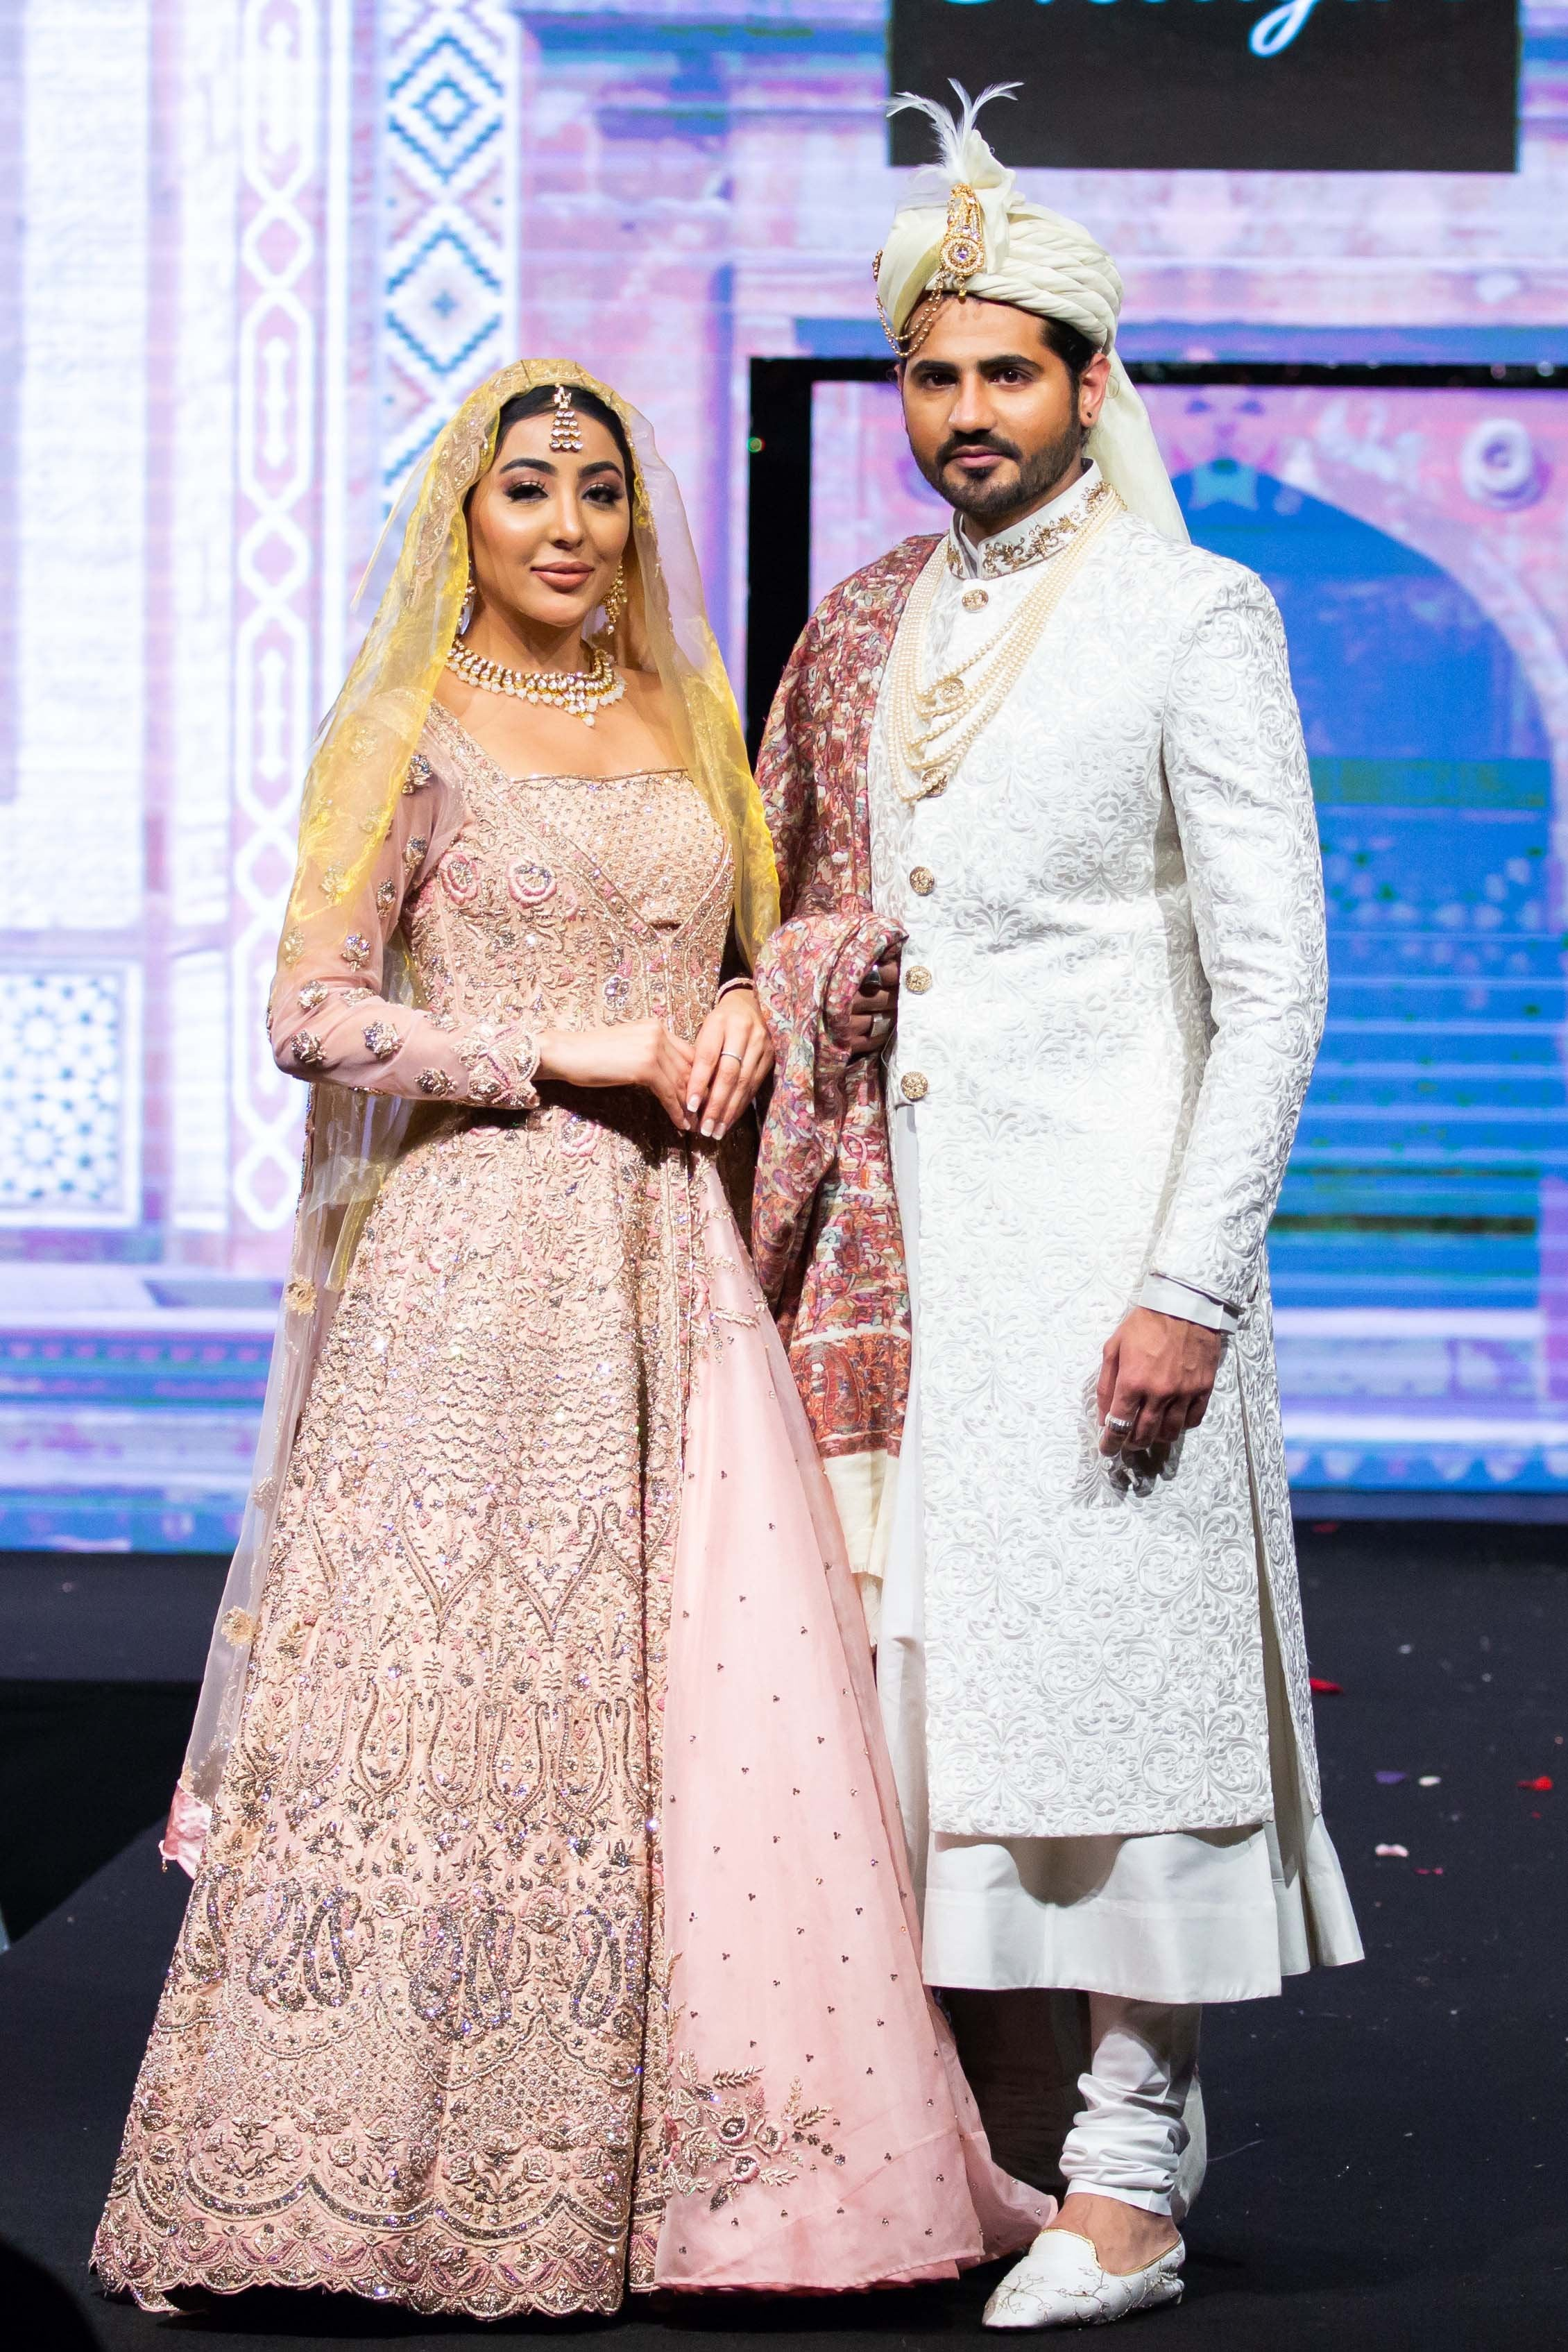 Blush Pink Bridal Jacket lehenga and Chogha Sherwani